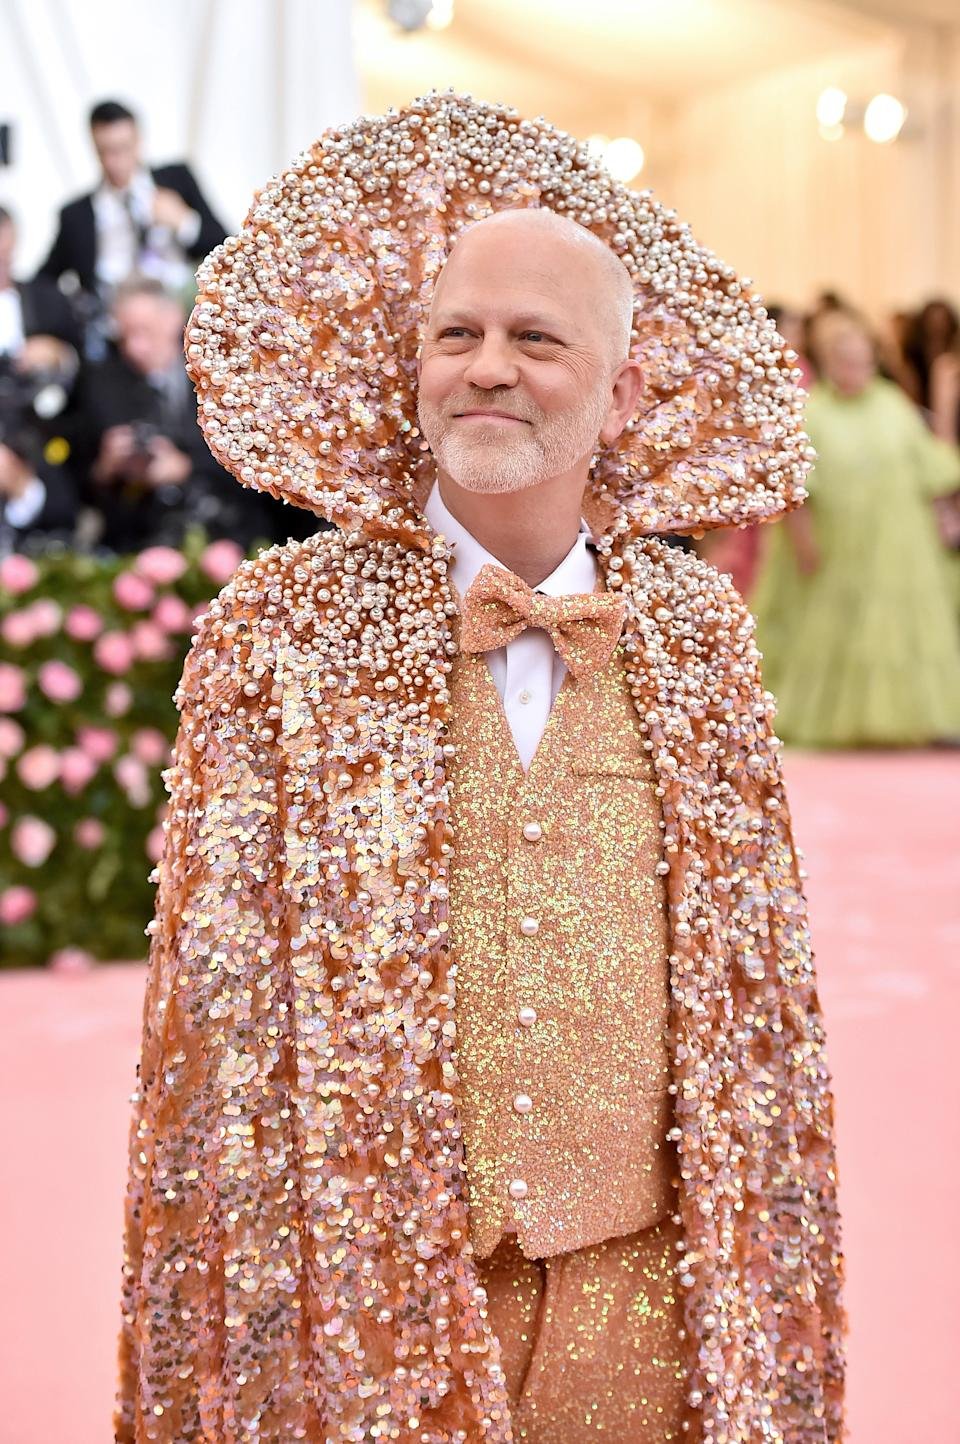 Ryan Murphy's second TV series for Netflix will serve as a love letter to the Hollywood of the '40s and '50s. Details are mum at this point, but as with any Murphy project, several incredible actors are on board, including Darren Criss, Jim Parsons, Maude Apatow, and Patti LuPone. <em>Streaming on Netflix</em>